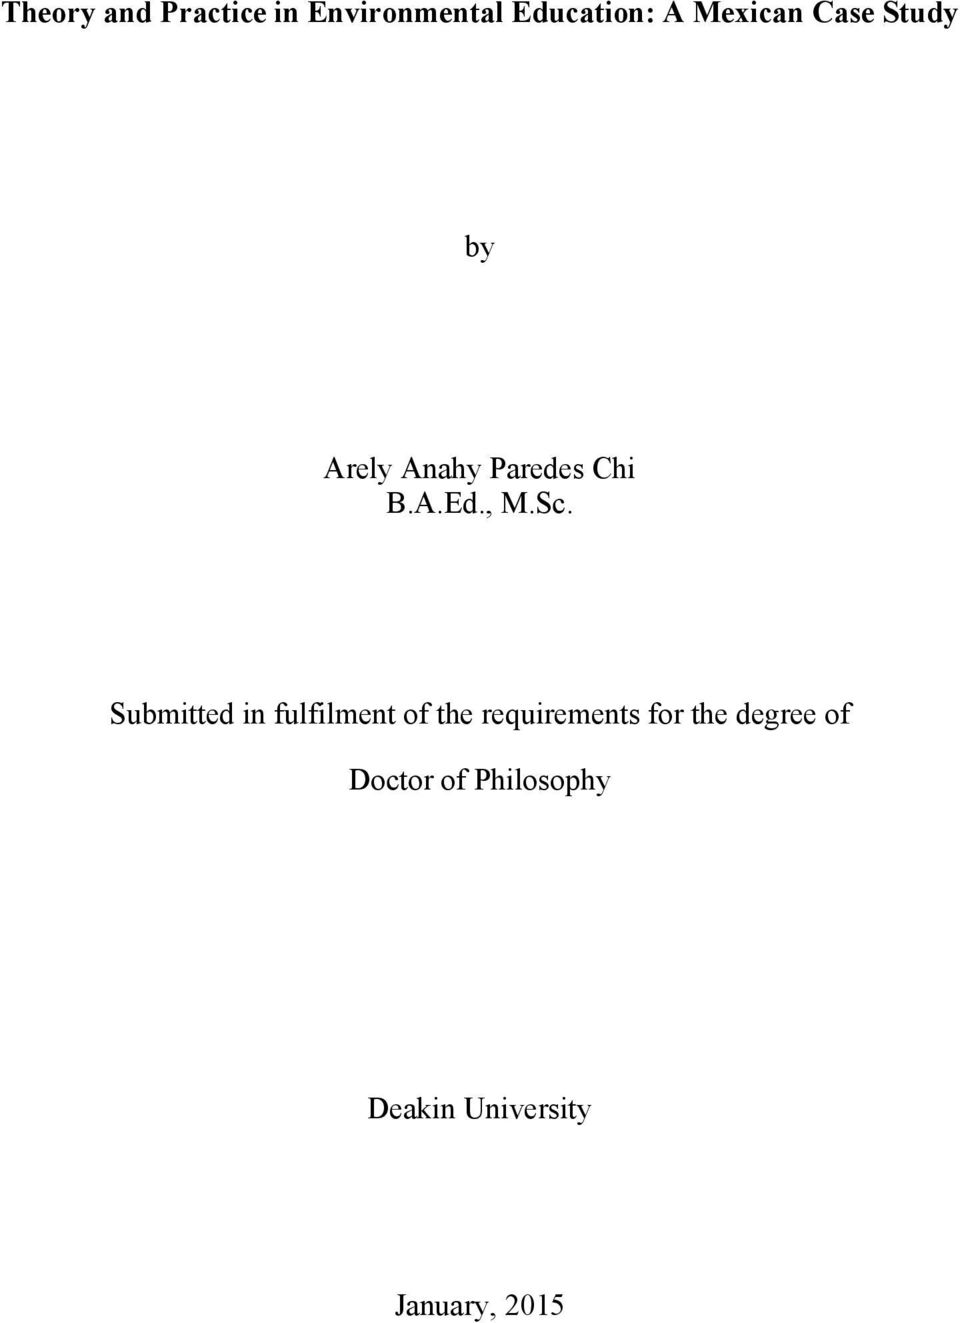 a thesis submitted in partial fulfillment of the requirements for the degree of doctor of philosophy